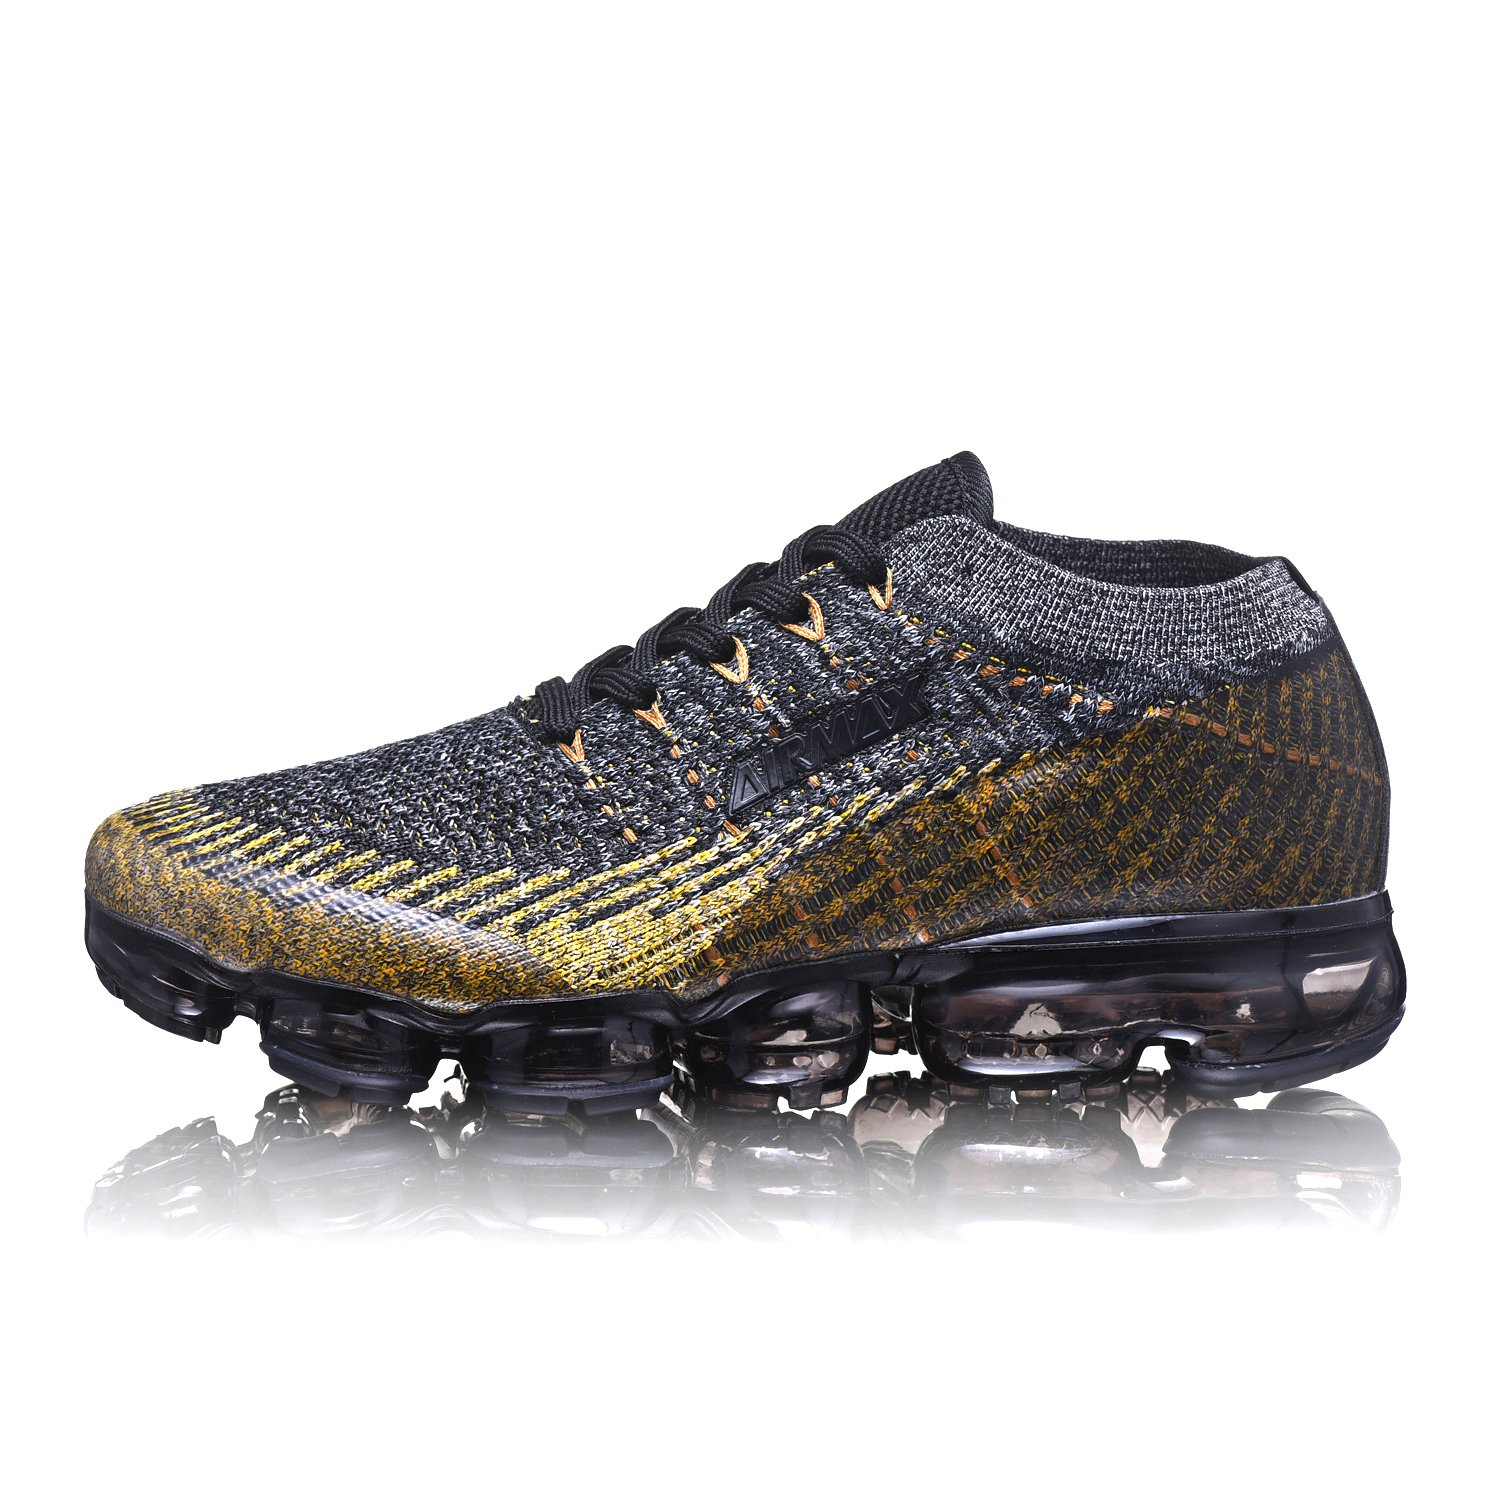 2018 Air Cushion Sports Running Casual Walking Sneakers Shoes for Men and Women B07F1QHKS6 us_4/cm_220/eur_36|Black/Gold